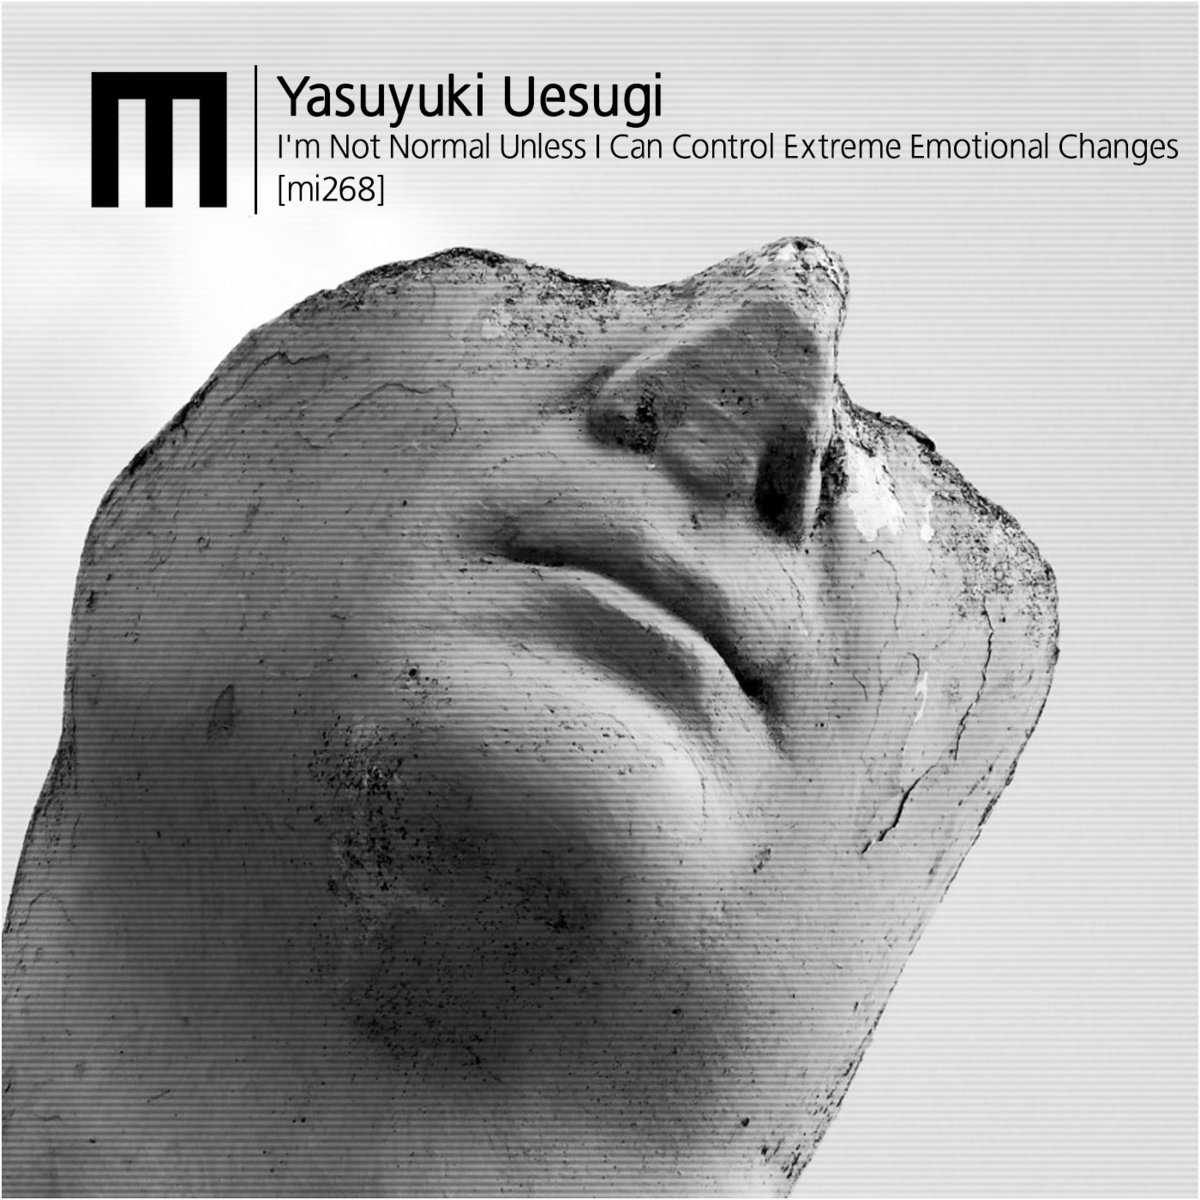 Yasuyuki Uesugi – I'm Not Normal Unless I Can Control Extreme Emotional Changes